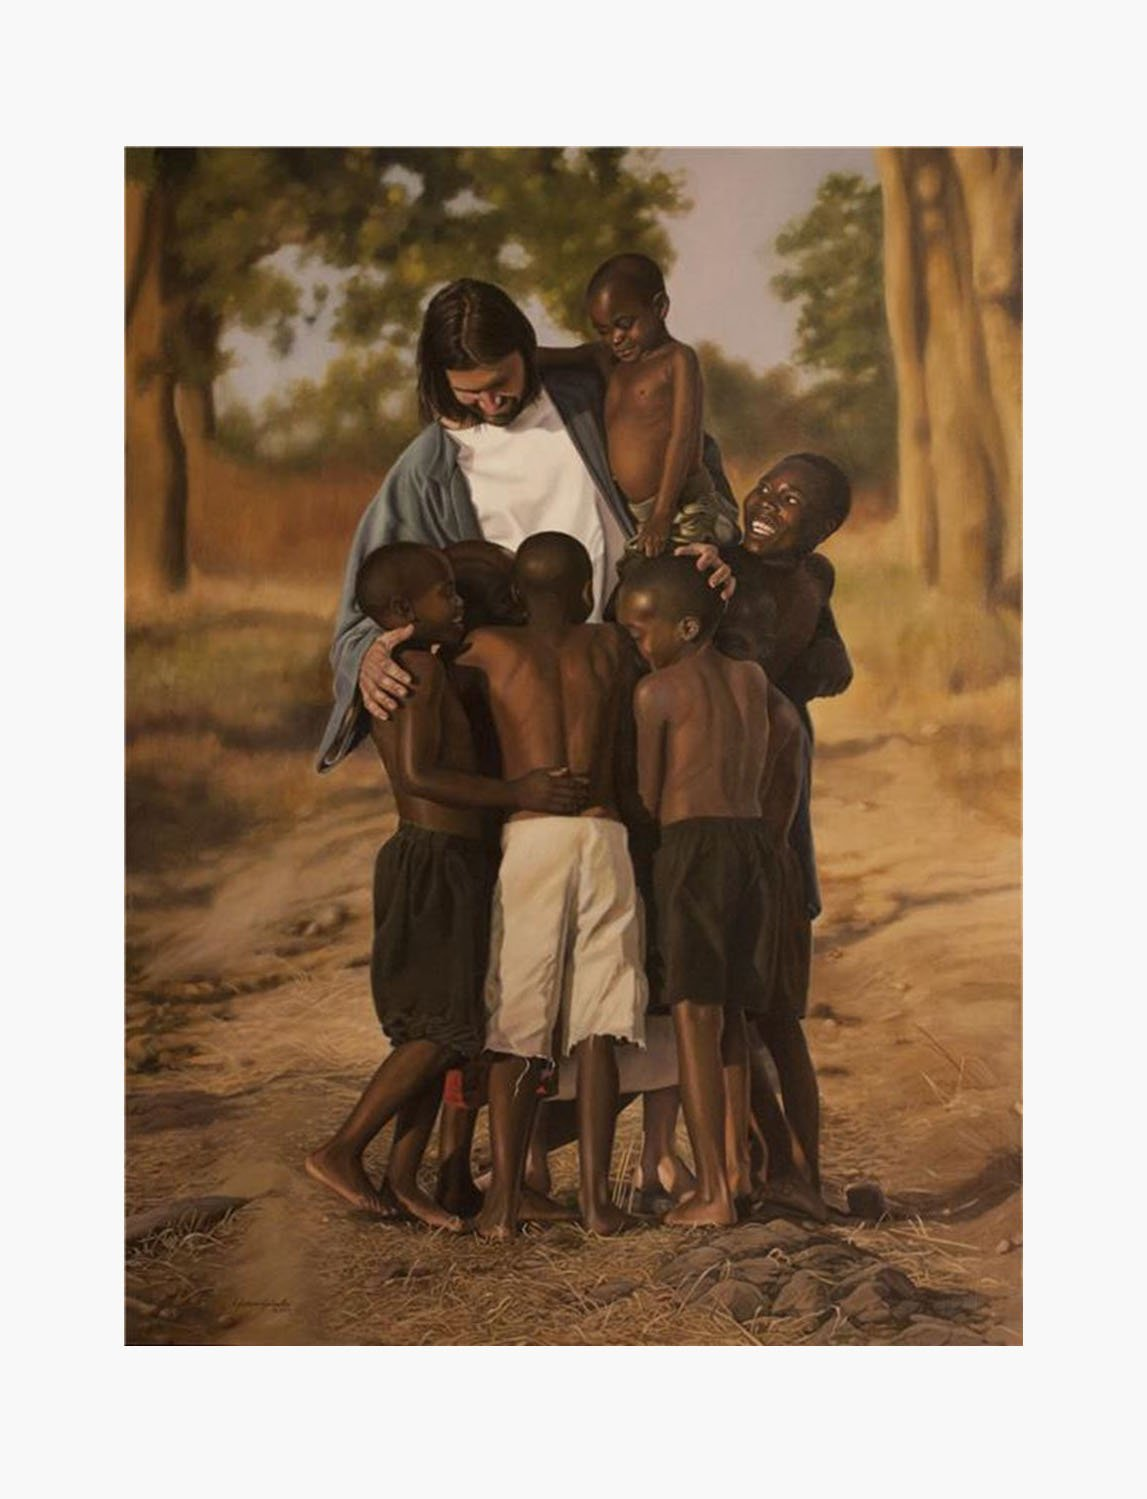 1bc8fd4d6f9 For All Mankind Limited Edition Giclée On Canvas 12 X 16 – Mothers Without  Borders